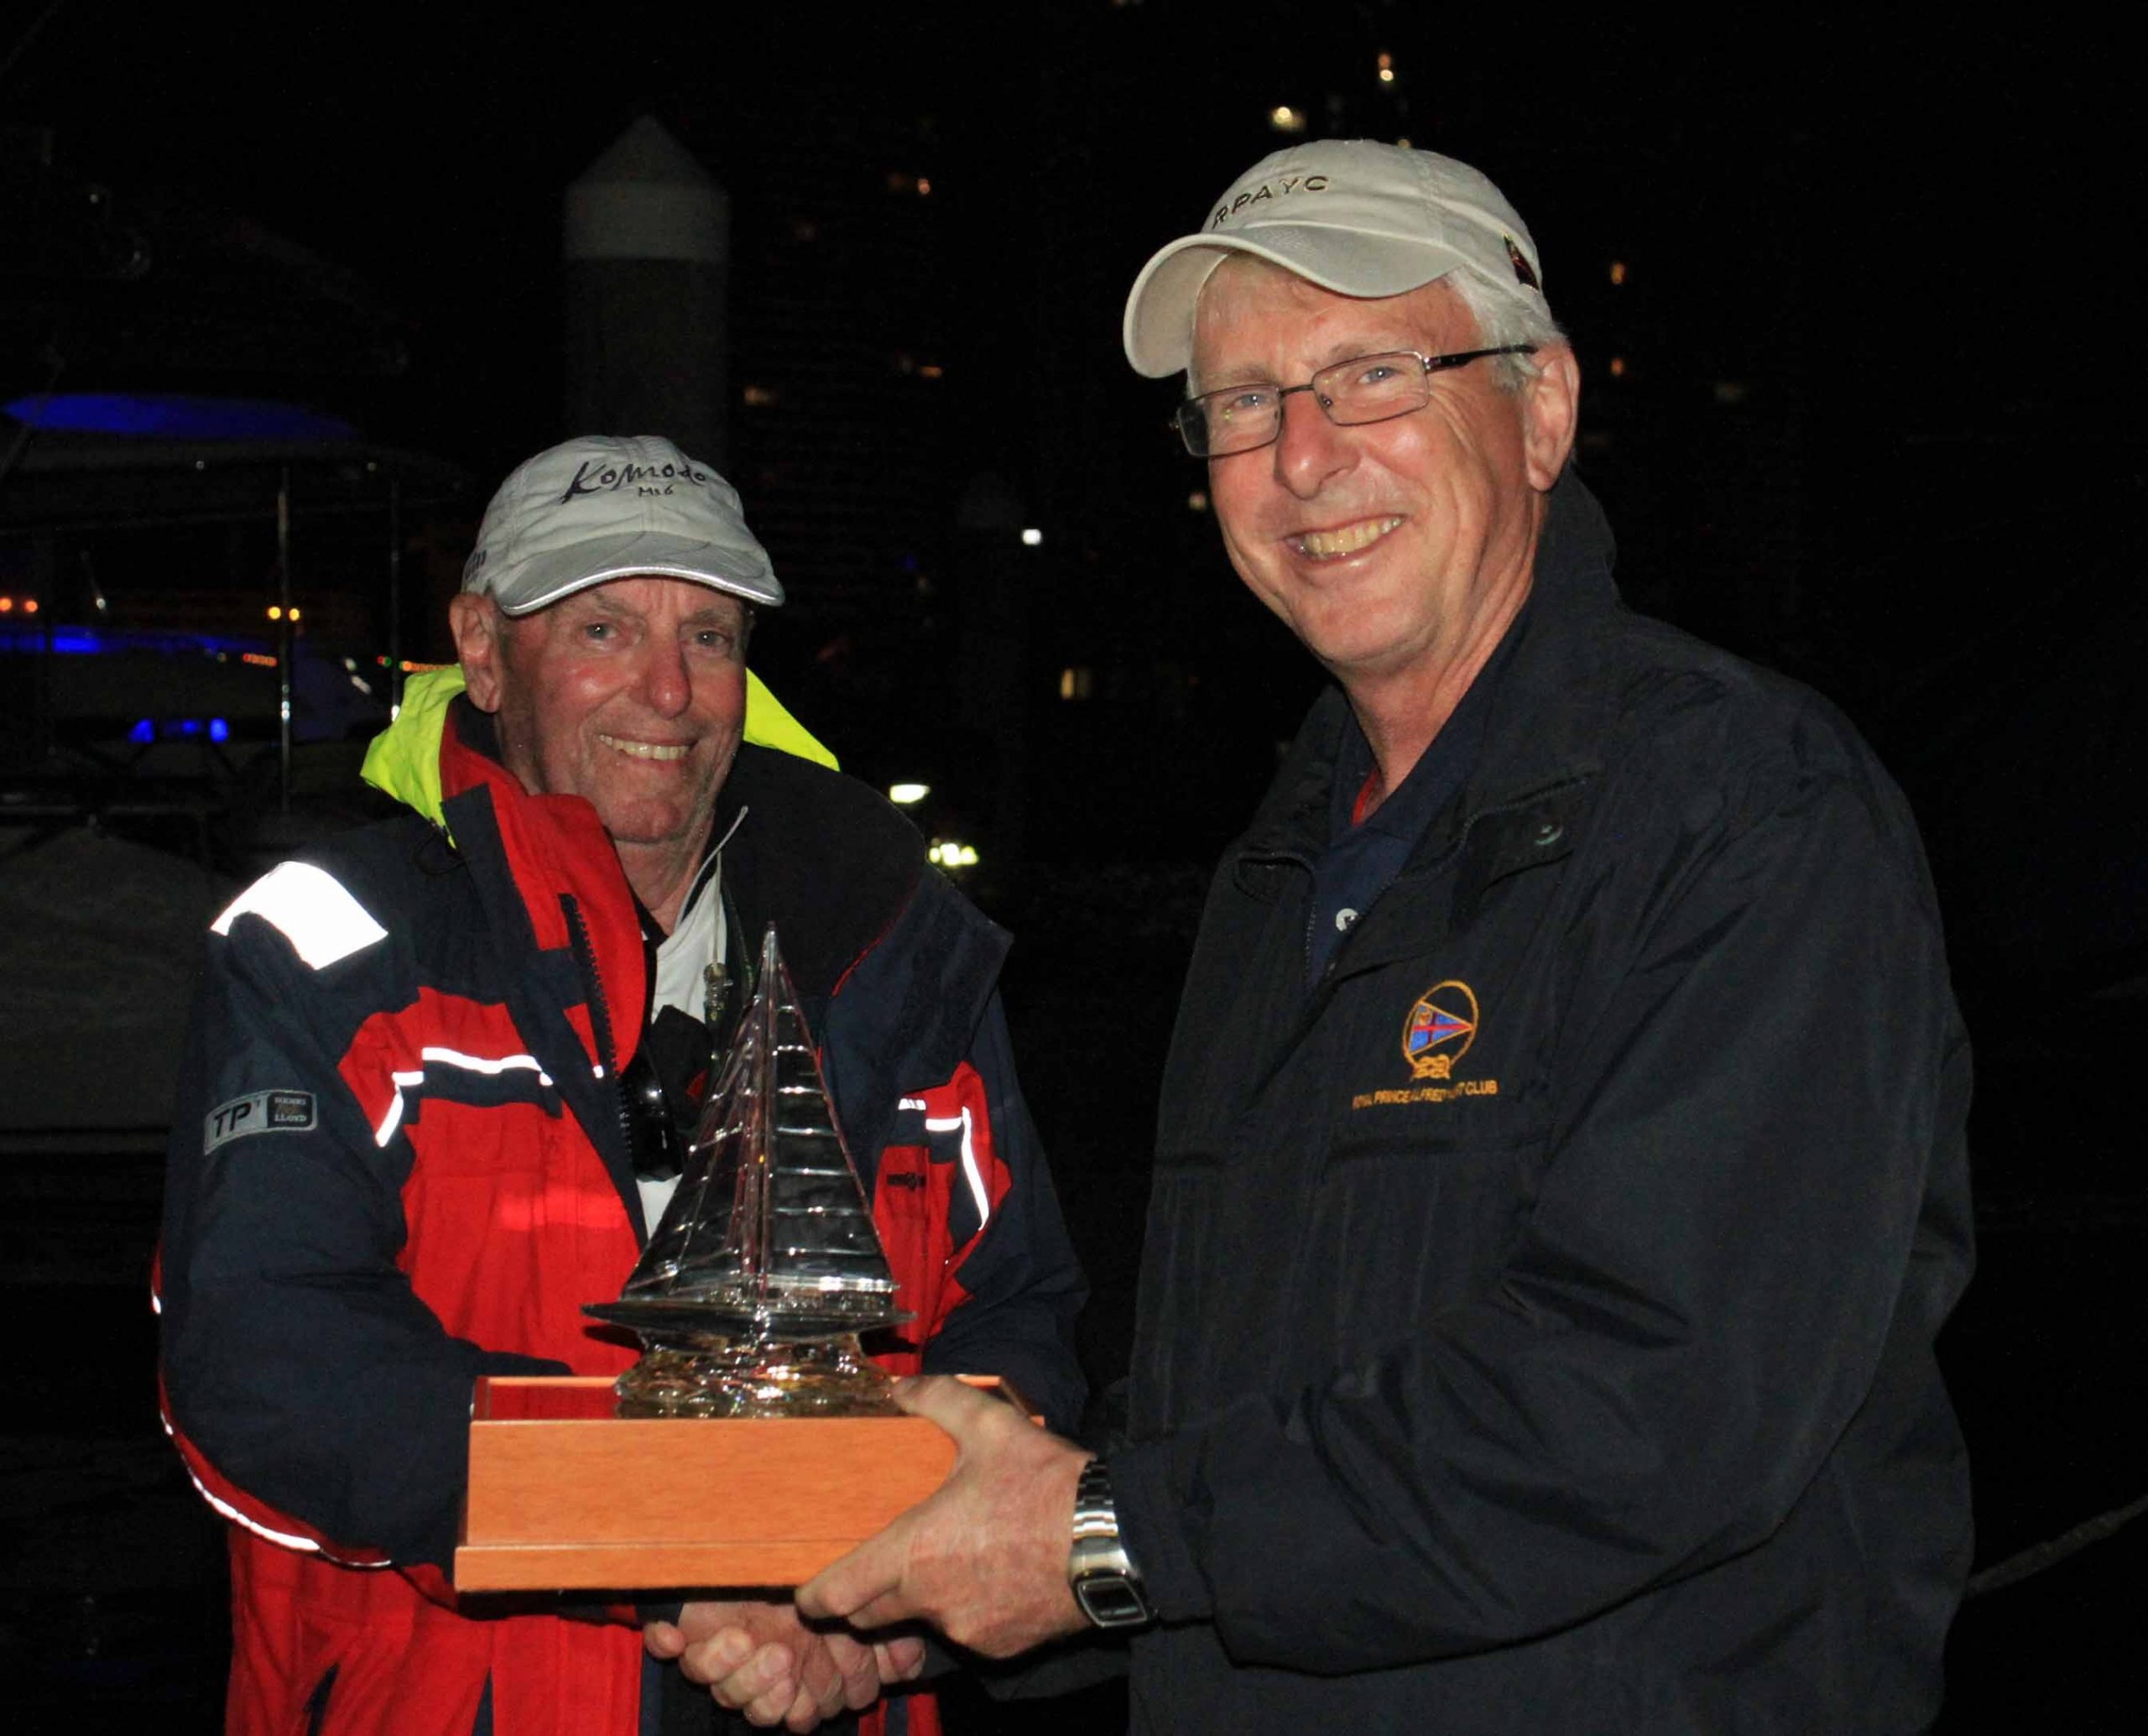 Doug Coulter receives the trophy from Commodore Ian Audsley (right)